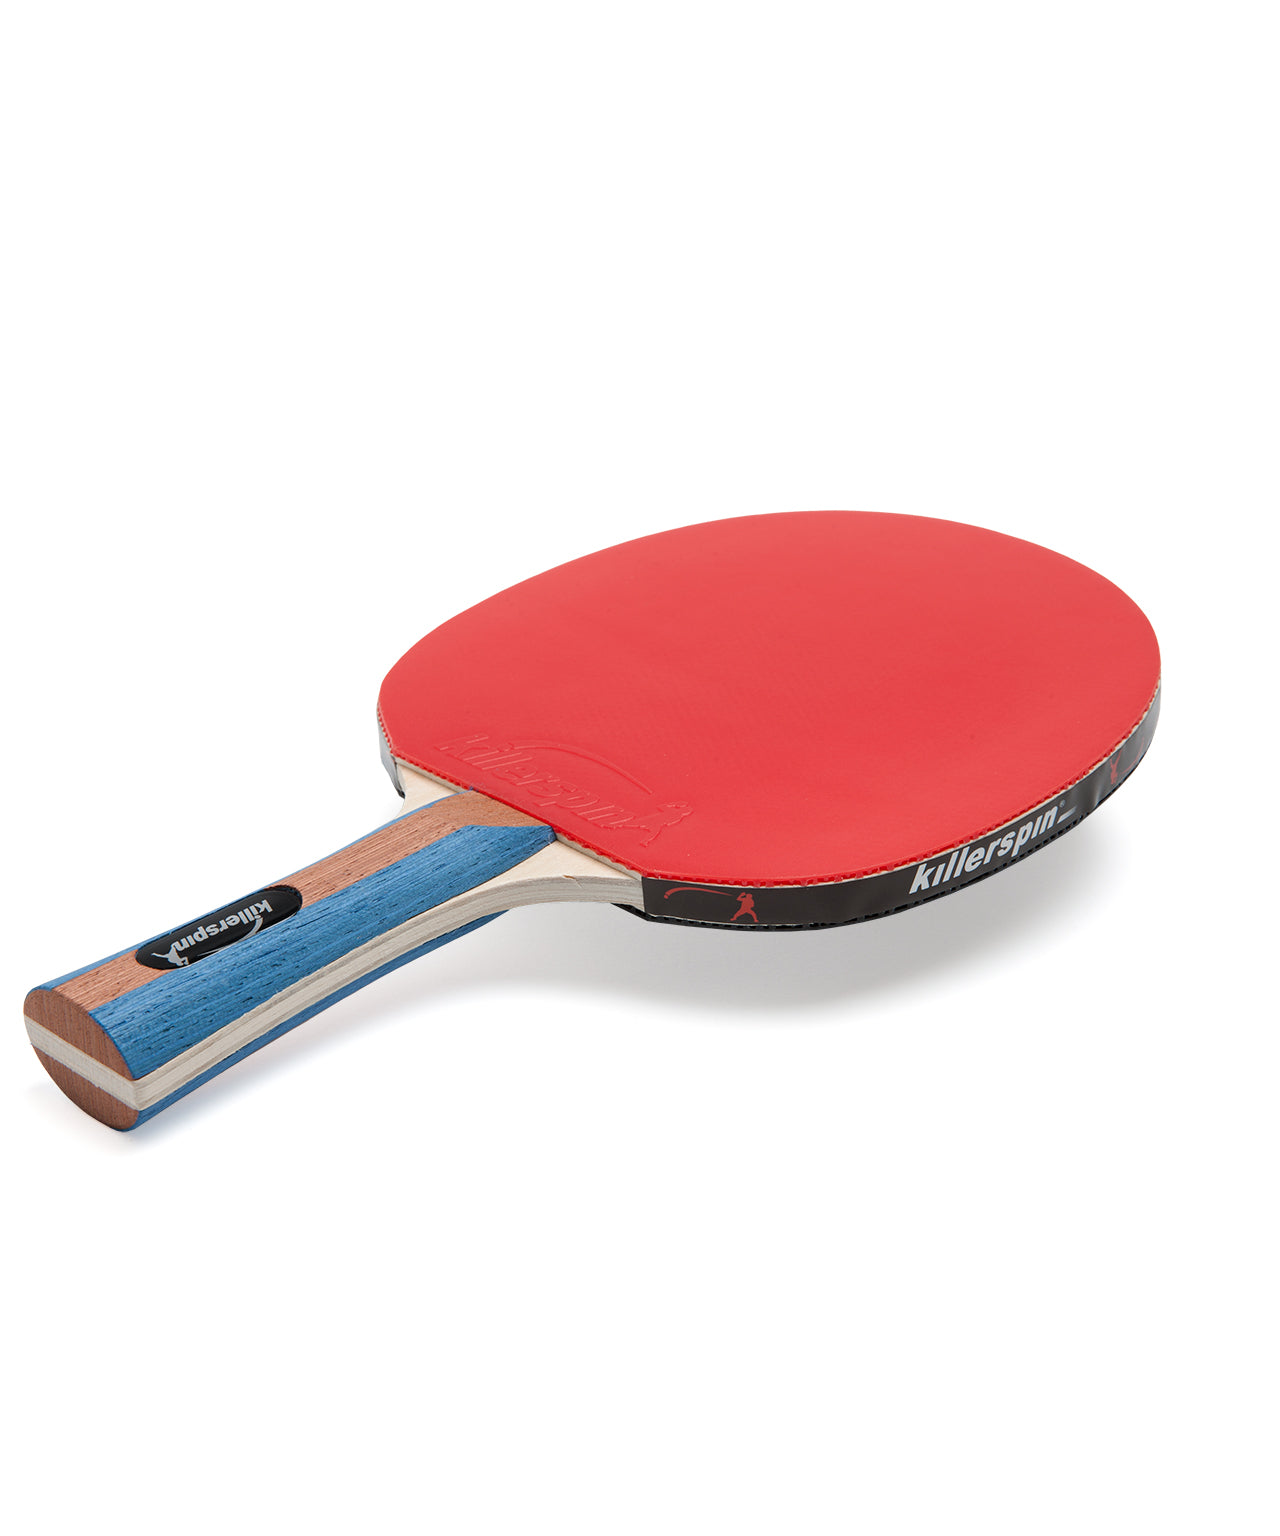 Killerspin Ping Pong Paddle Set JetSet2 Premium - Red Rubber